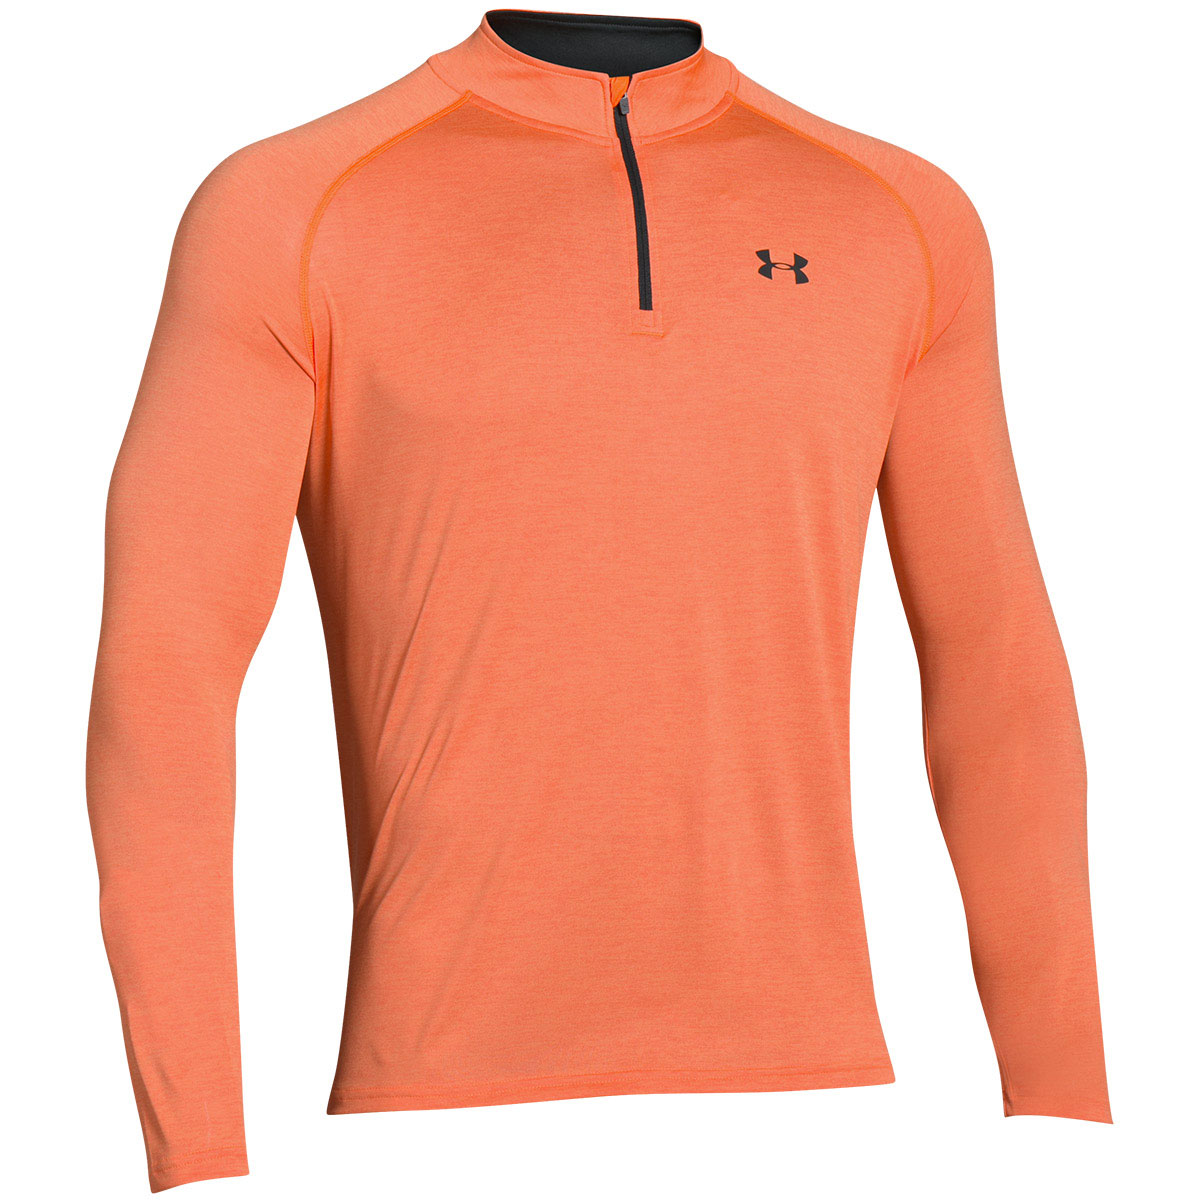 Under armour 2017 mens ua tech 1 4 zip long sleeve top gym Fitness shirts for men